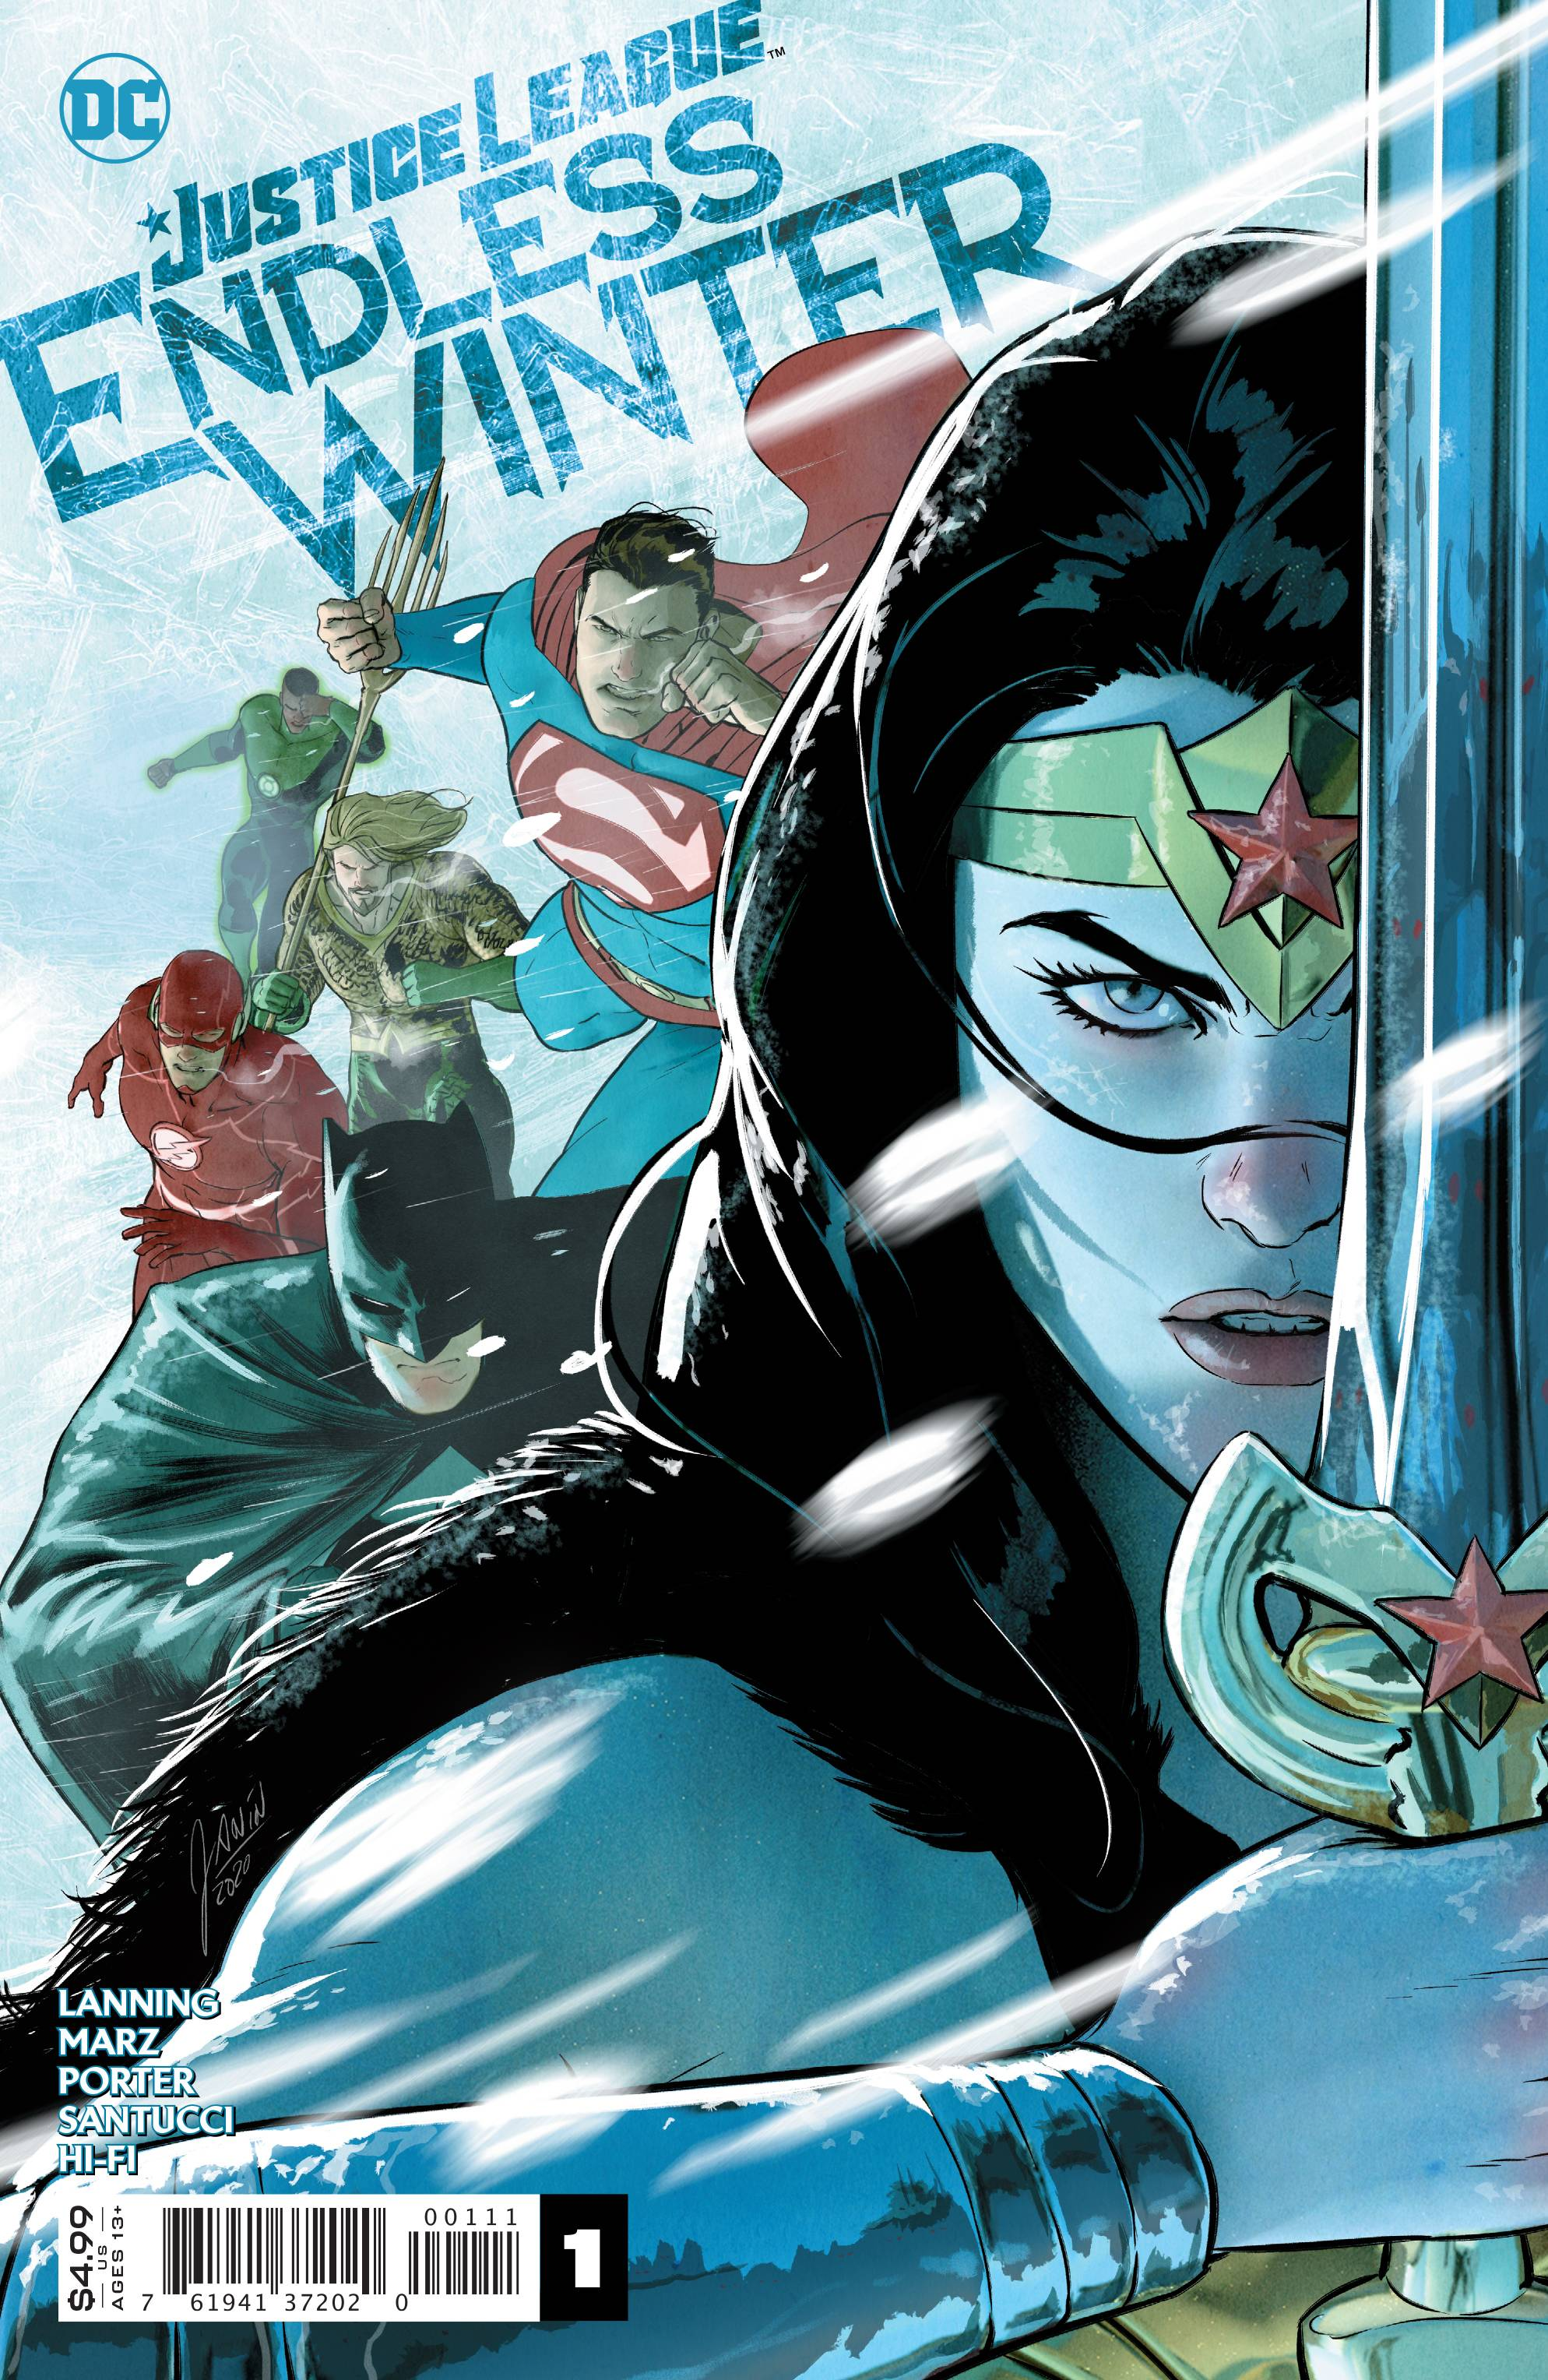 JUSTICE LEAGUE ENDLESS WINTER #1